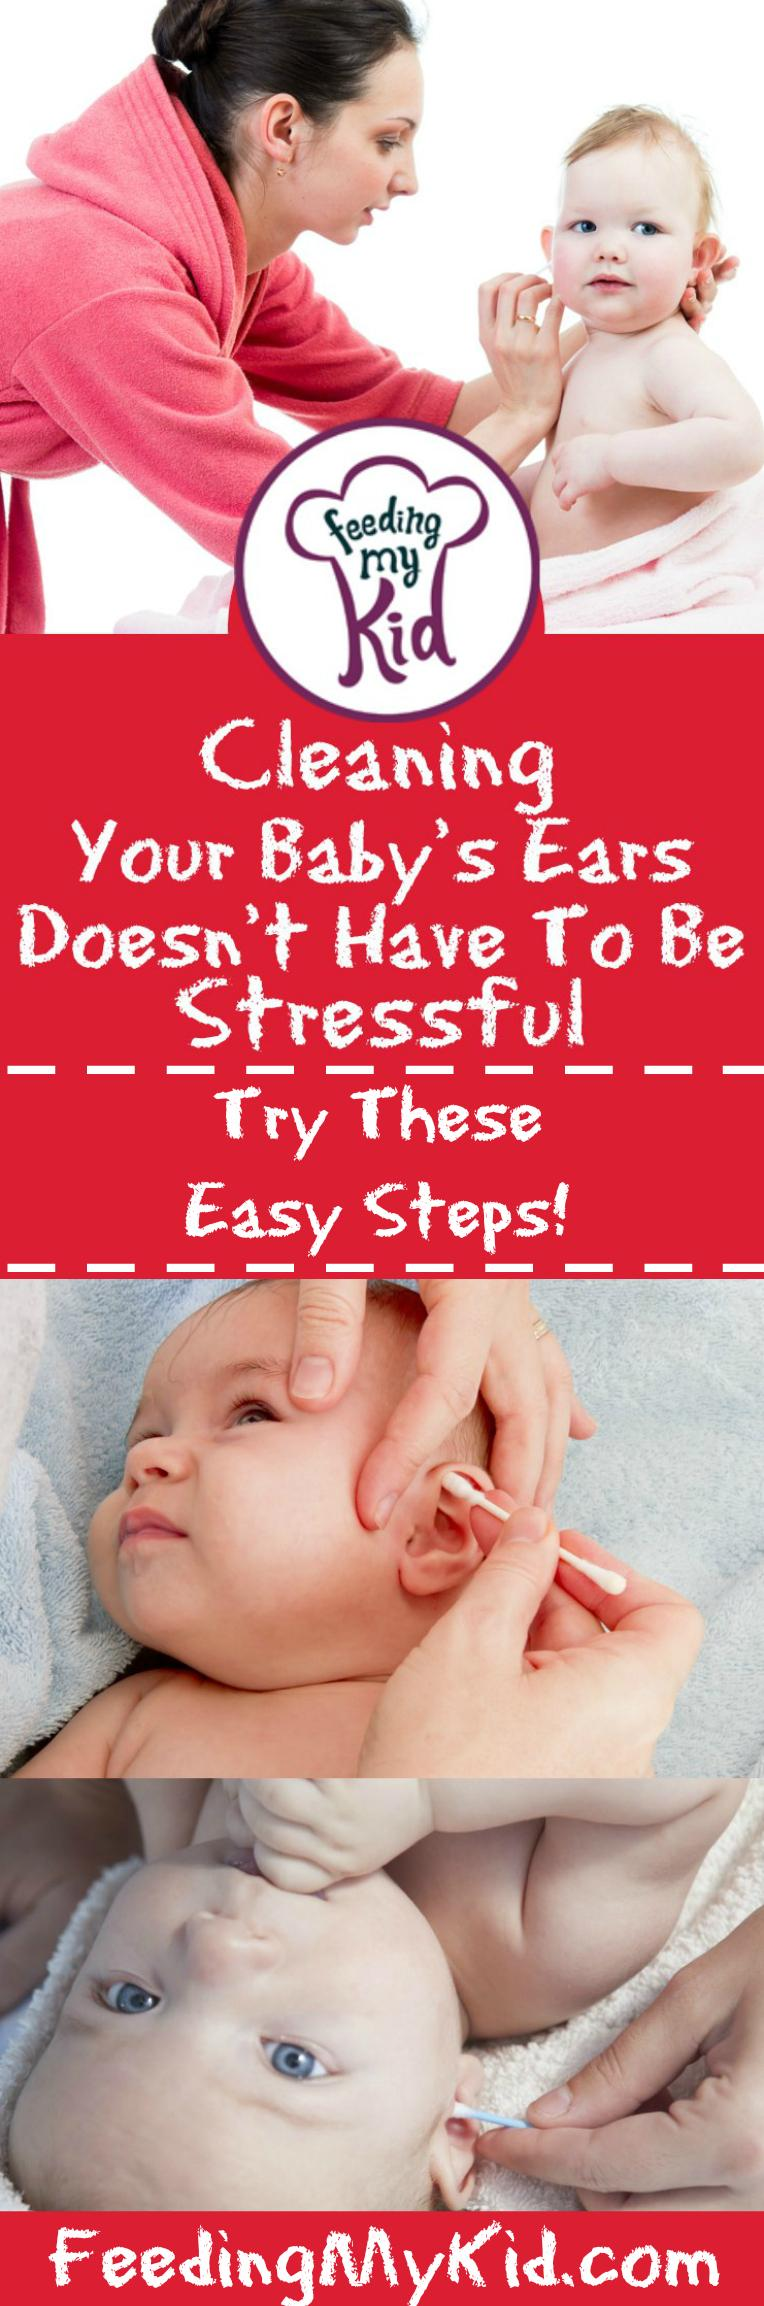 Some great videos with easy tips that will change how you clean your baby's ears forever! Feeding My Kid is a website for parents, filled with all the information you need about how to raise your kids, from healthy tips to nutritious recipes. #videos #tips #hacks #babyears